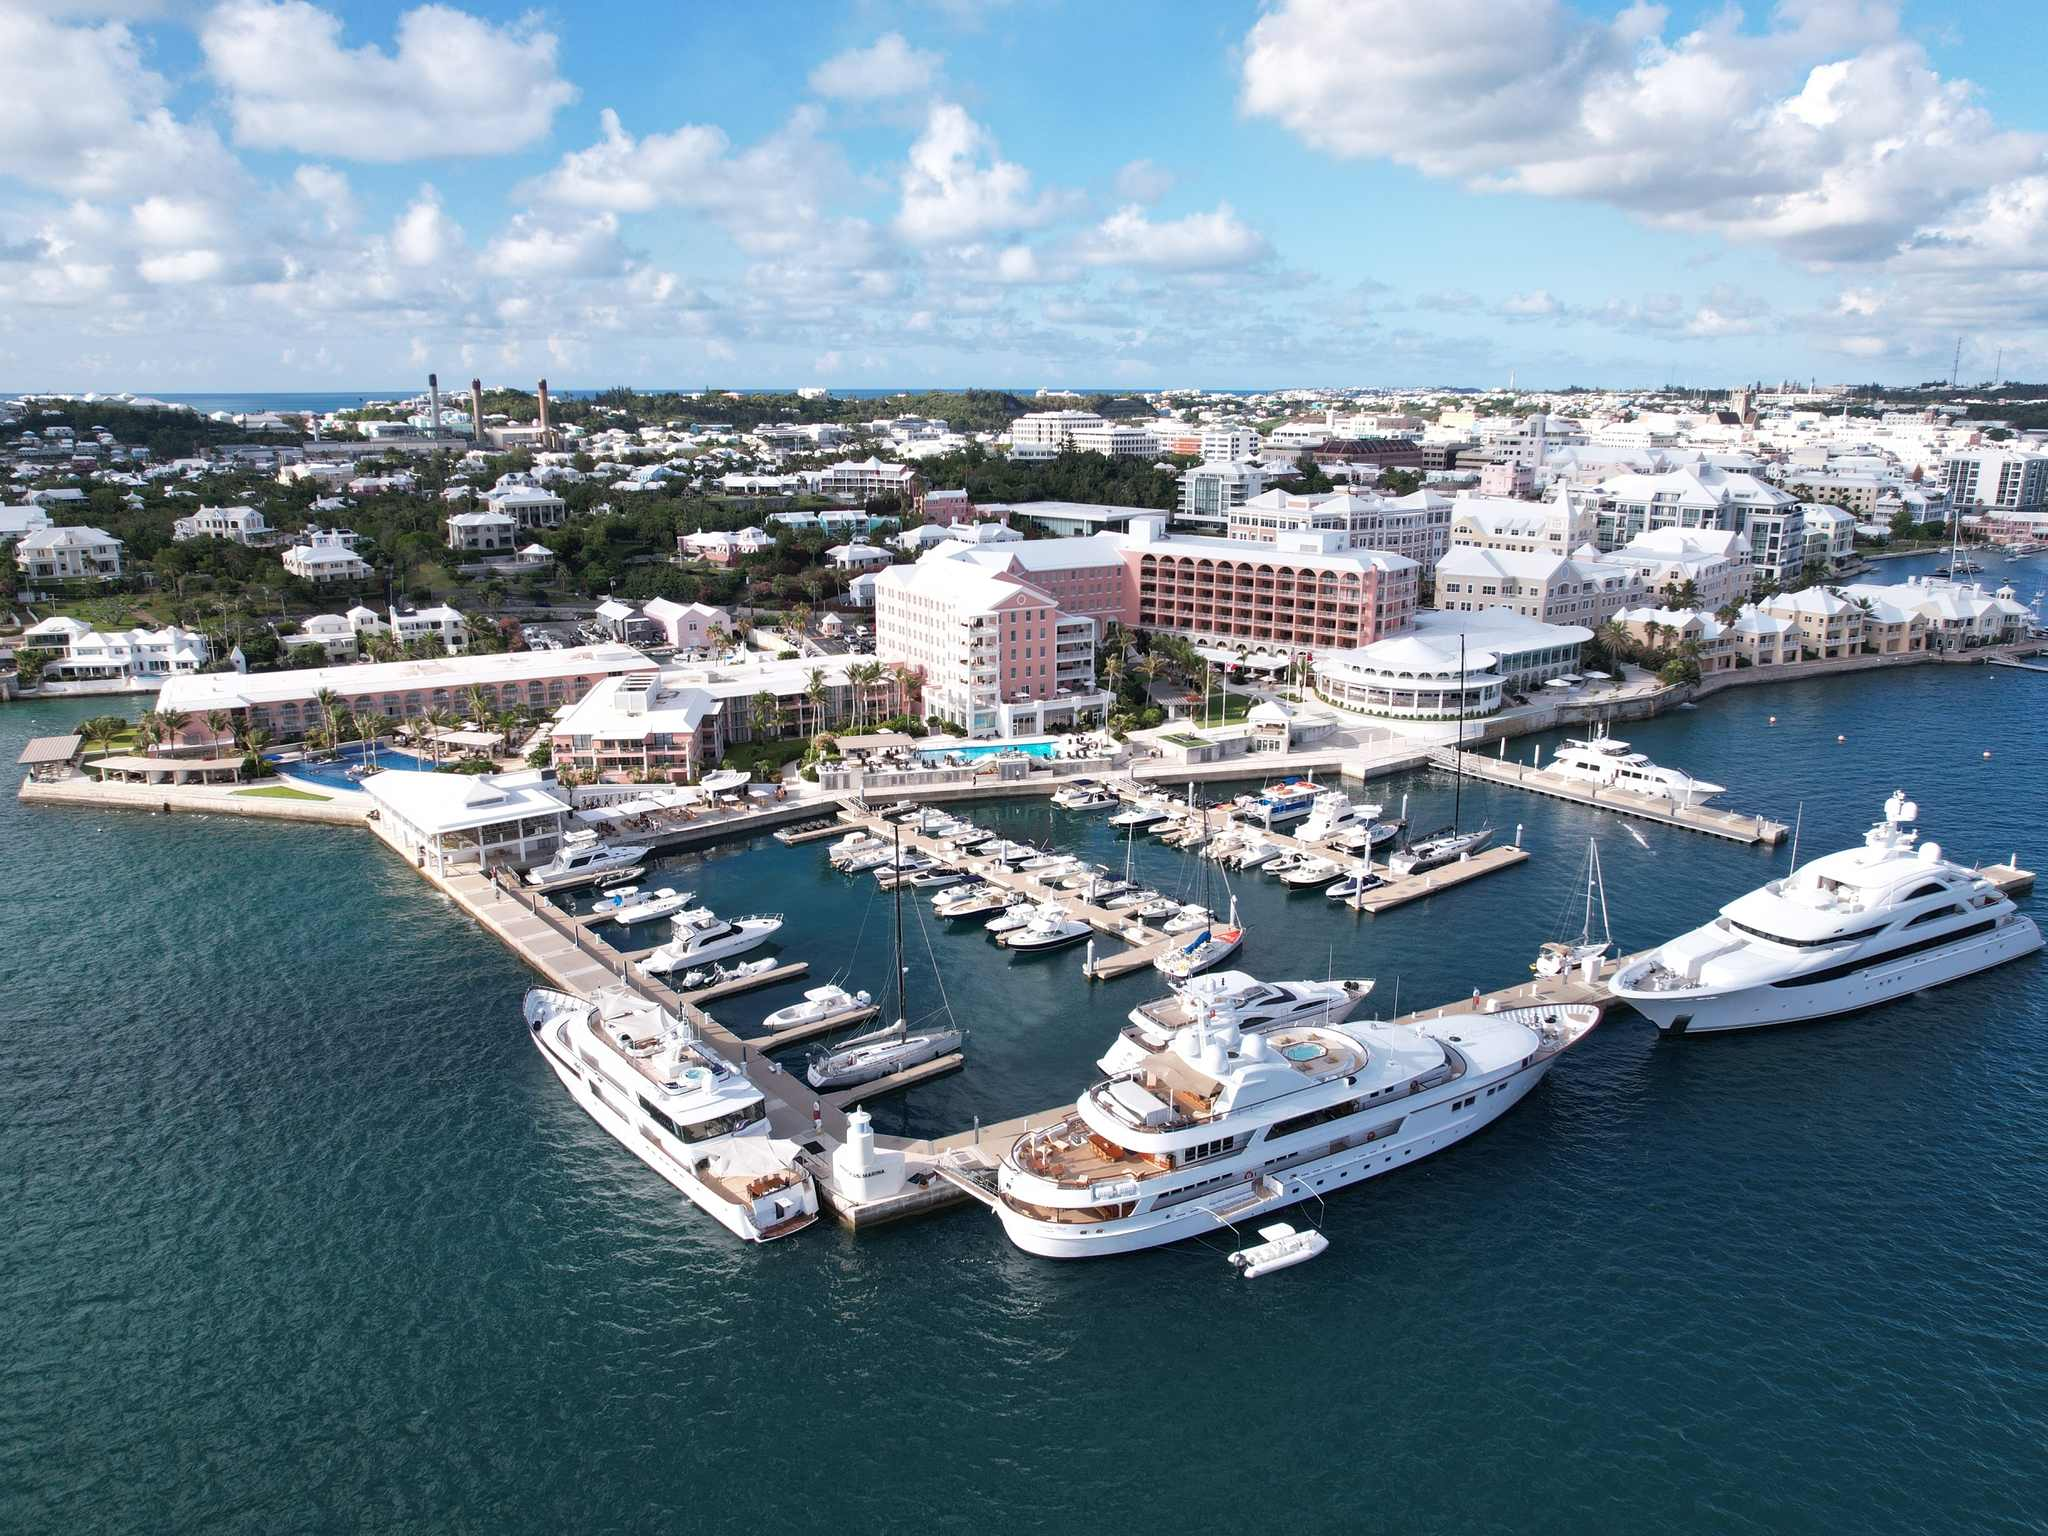 Hôtel - Hamilton Princess & Beach Club - A Fairmont Managed Hotel